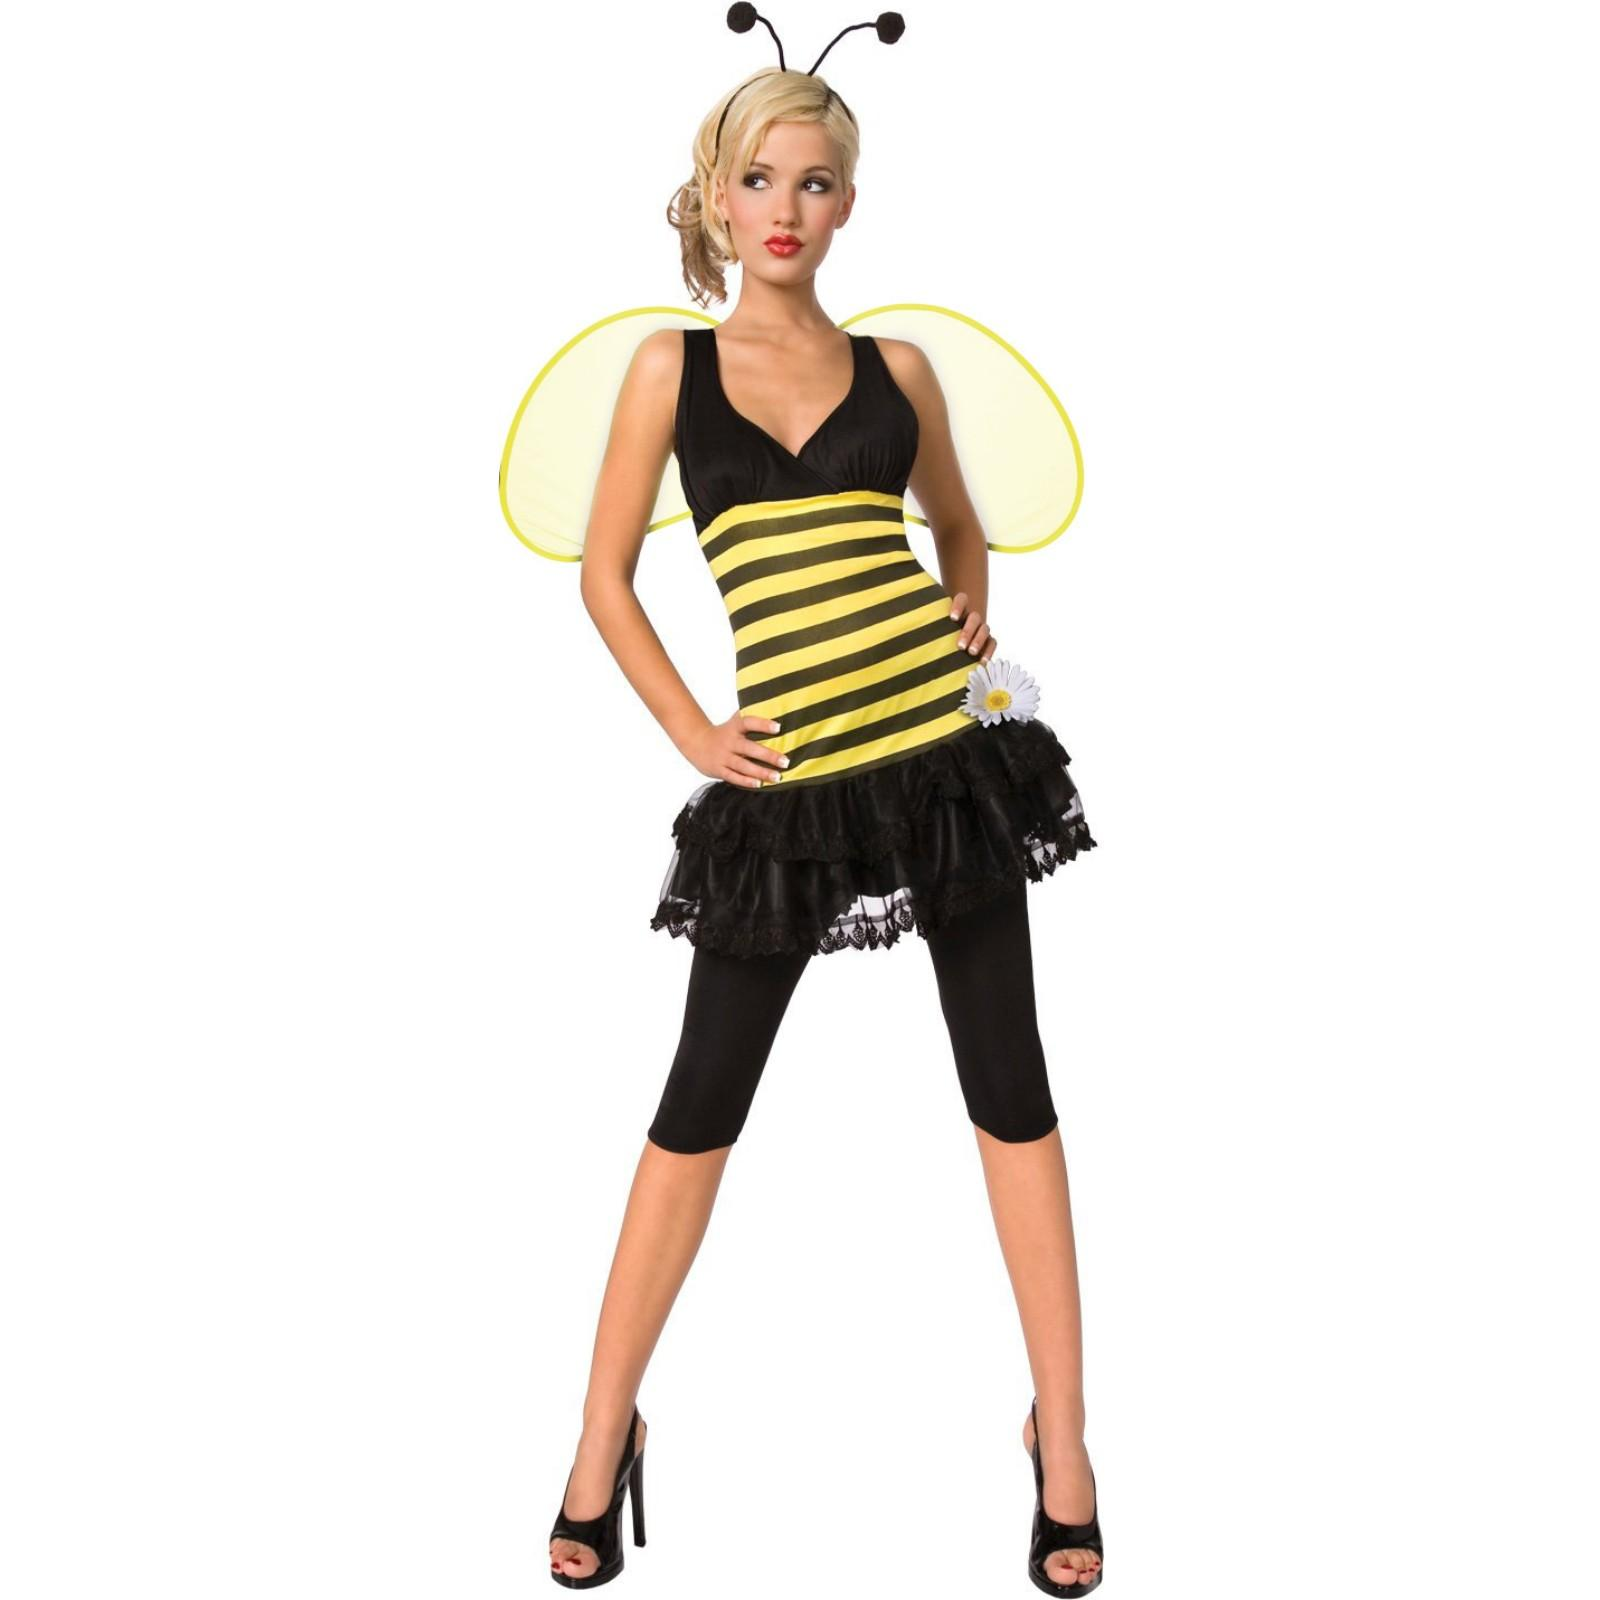 Sweet as Honey Adult Costume - Small (6-8)